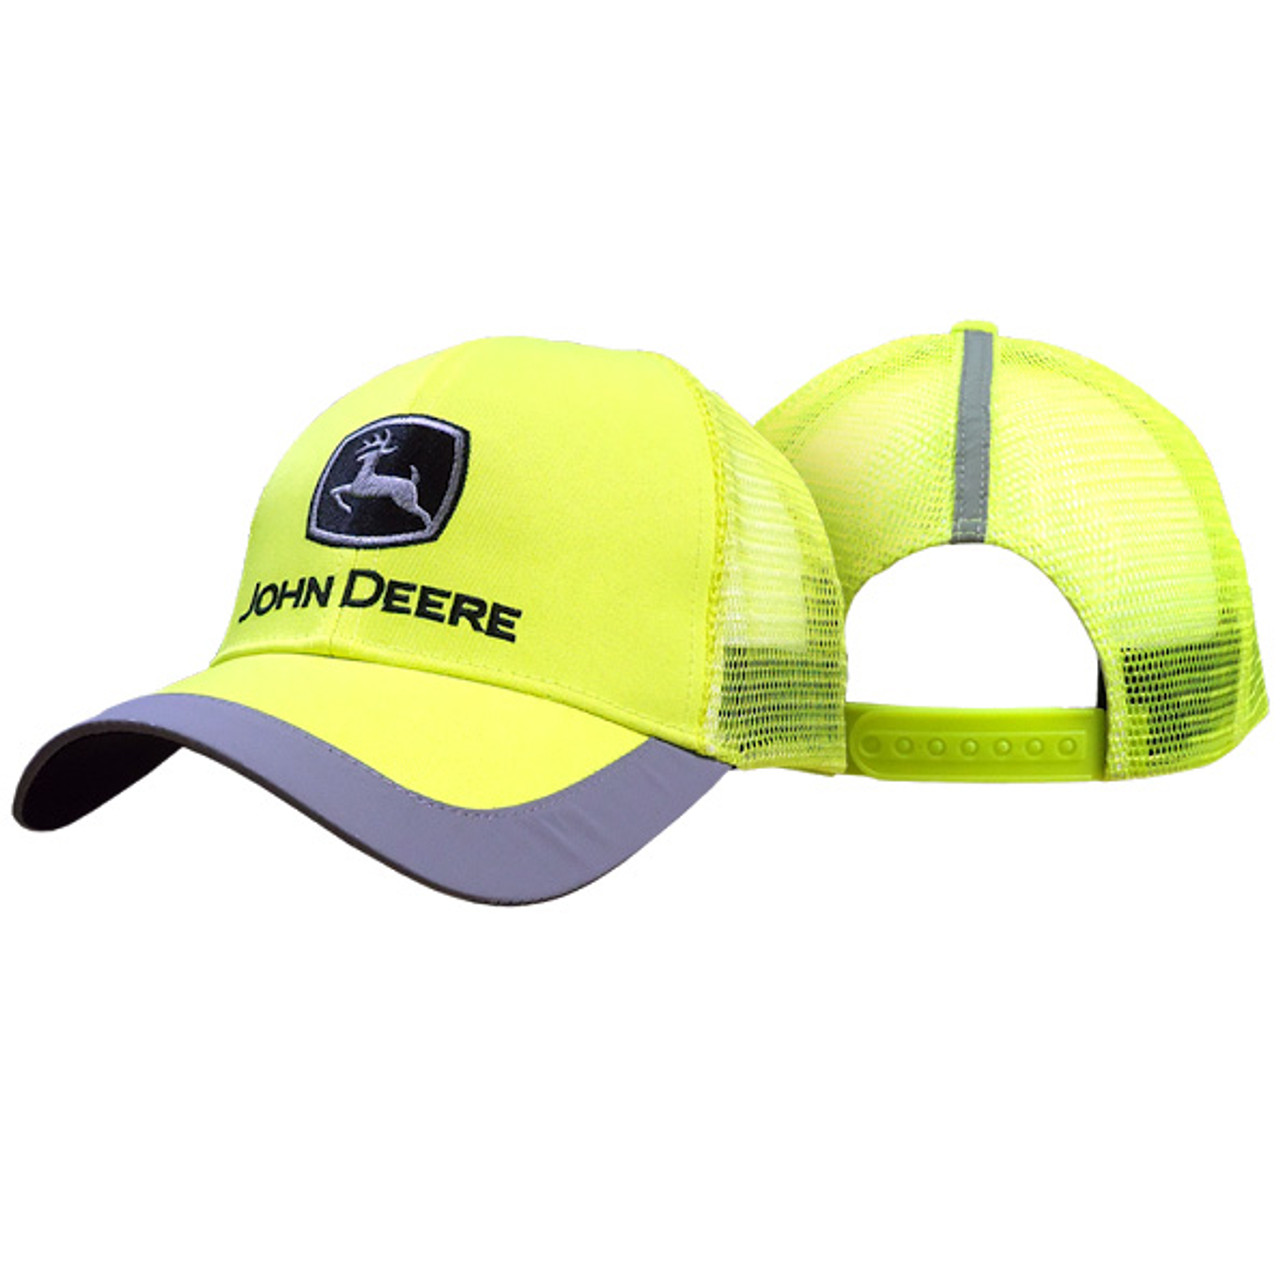 f42cfadd51ed7 John Deere Men s High Visibility Yellow Cap With Reflective Trim - Trenz  Shirt Company